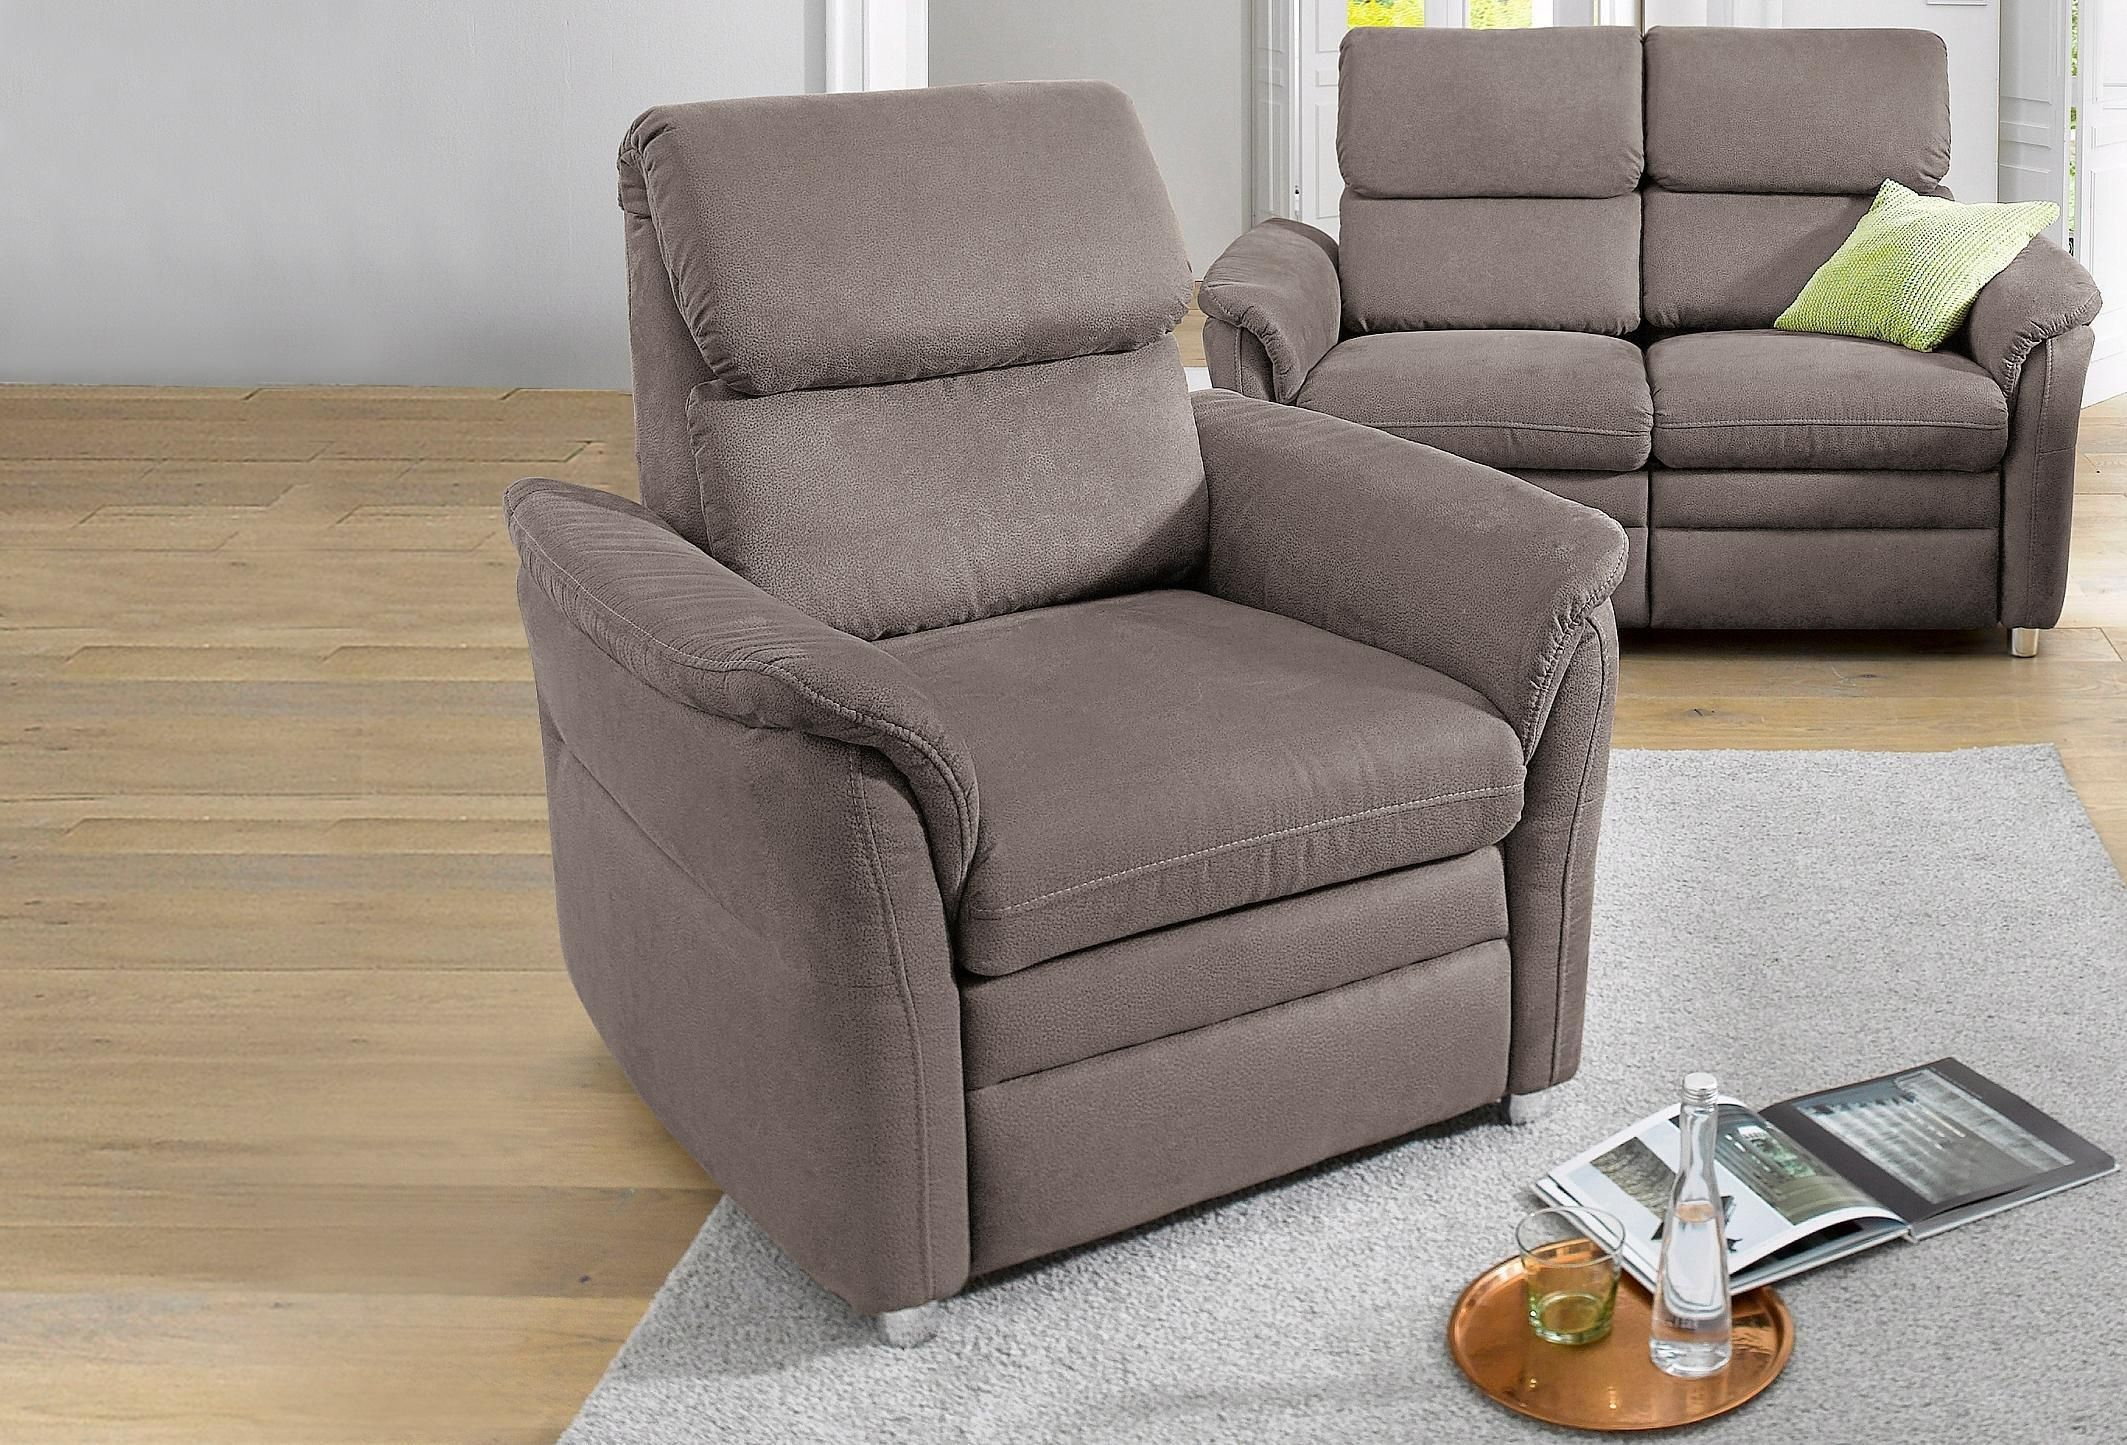 Raumid Sessel In 2019 Sessel Sessel Couch Sessel Und Ohrensessel